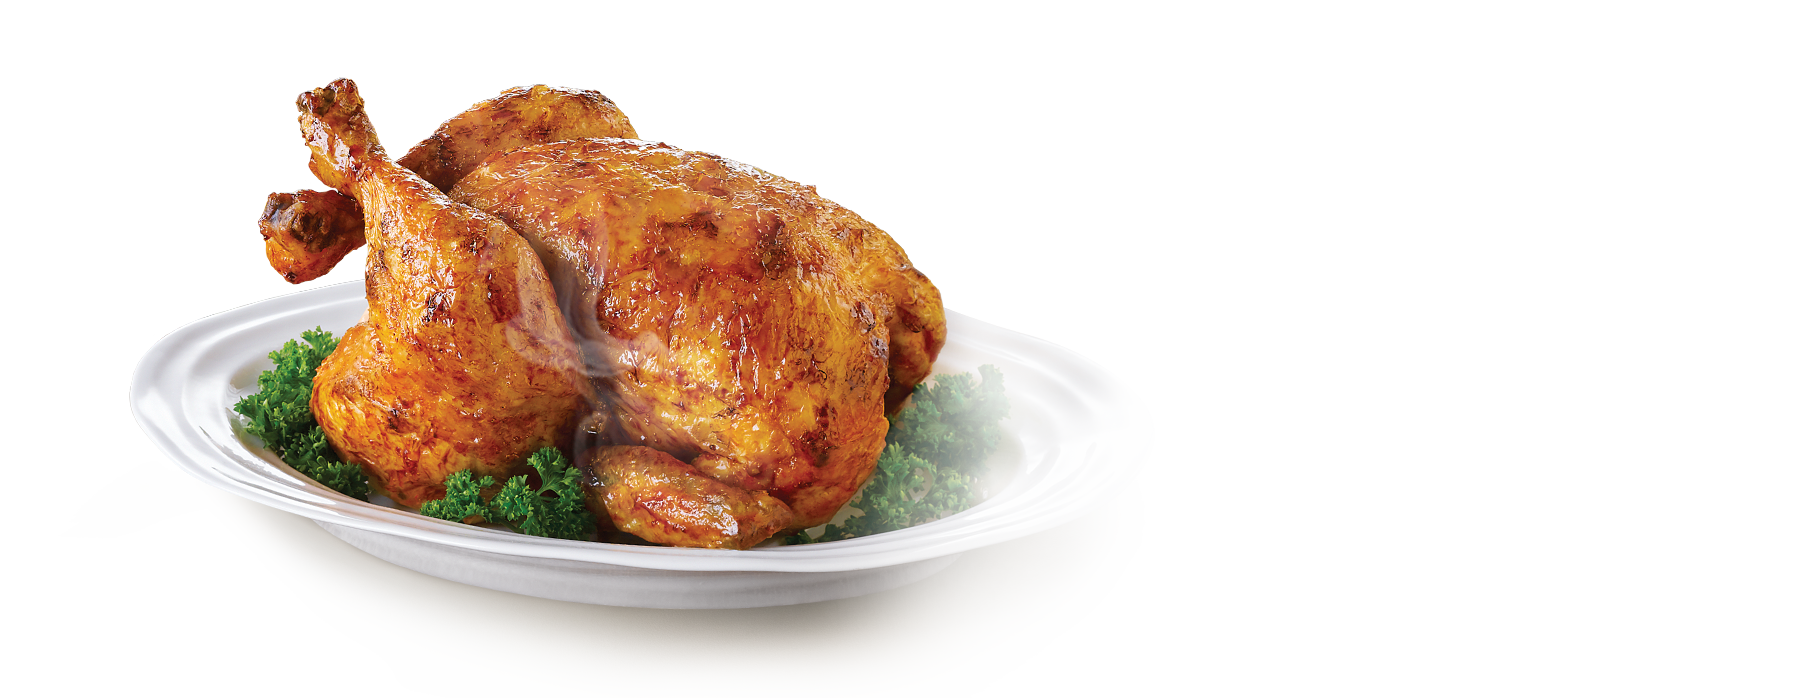 Fried png image purepng. Dinner clipart chicken dish